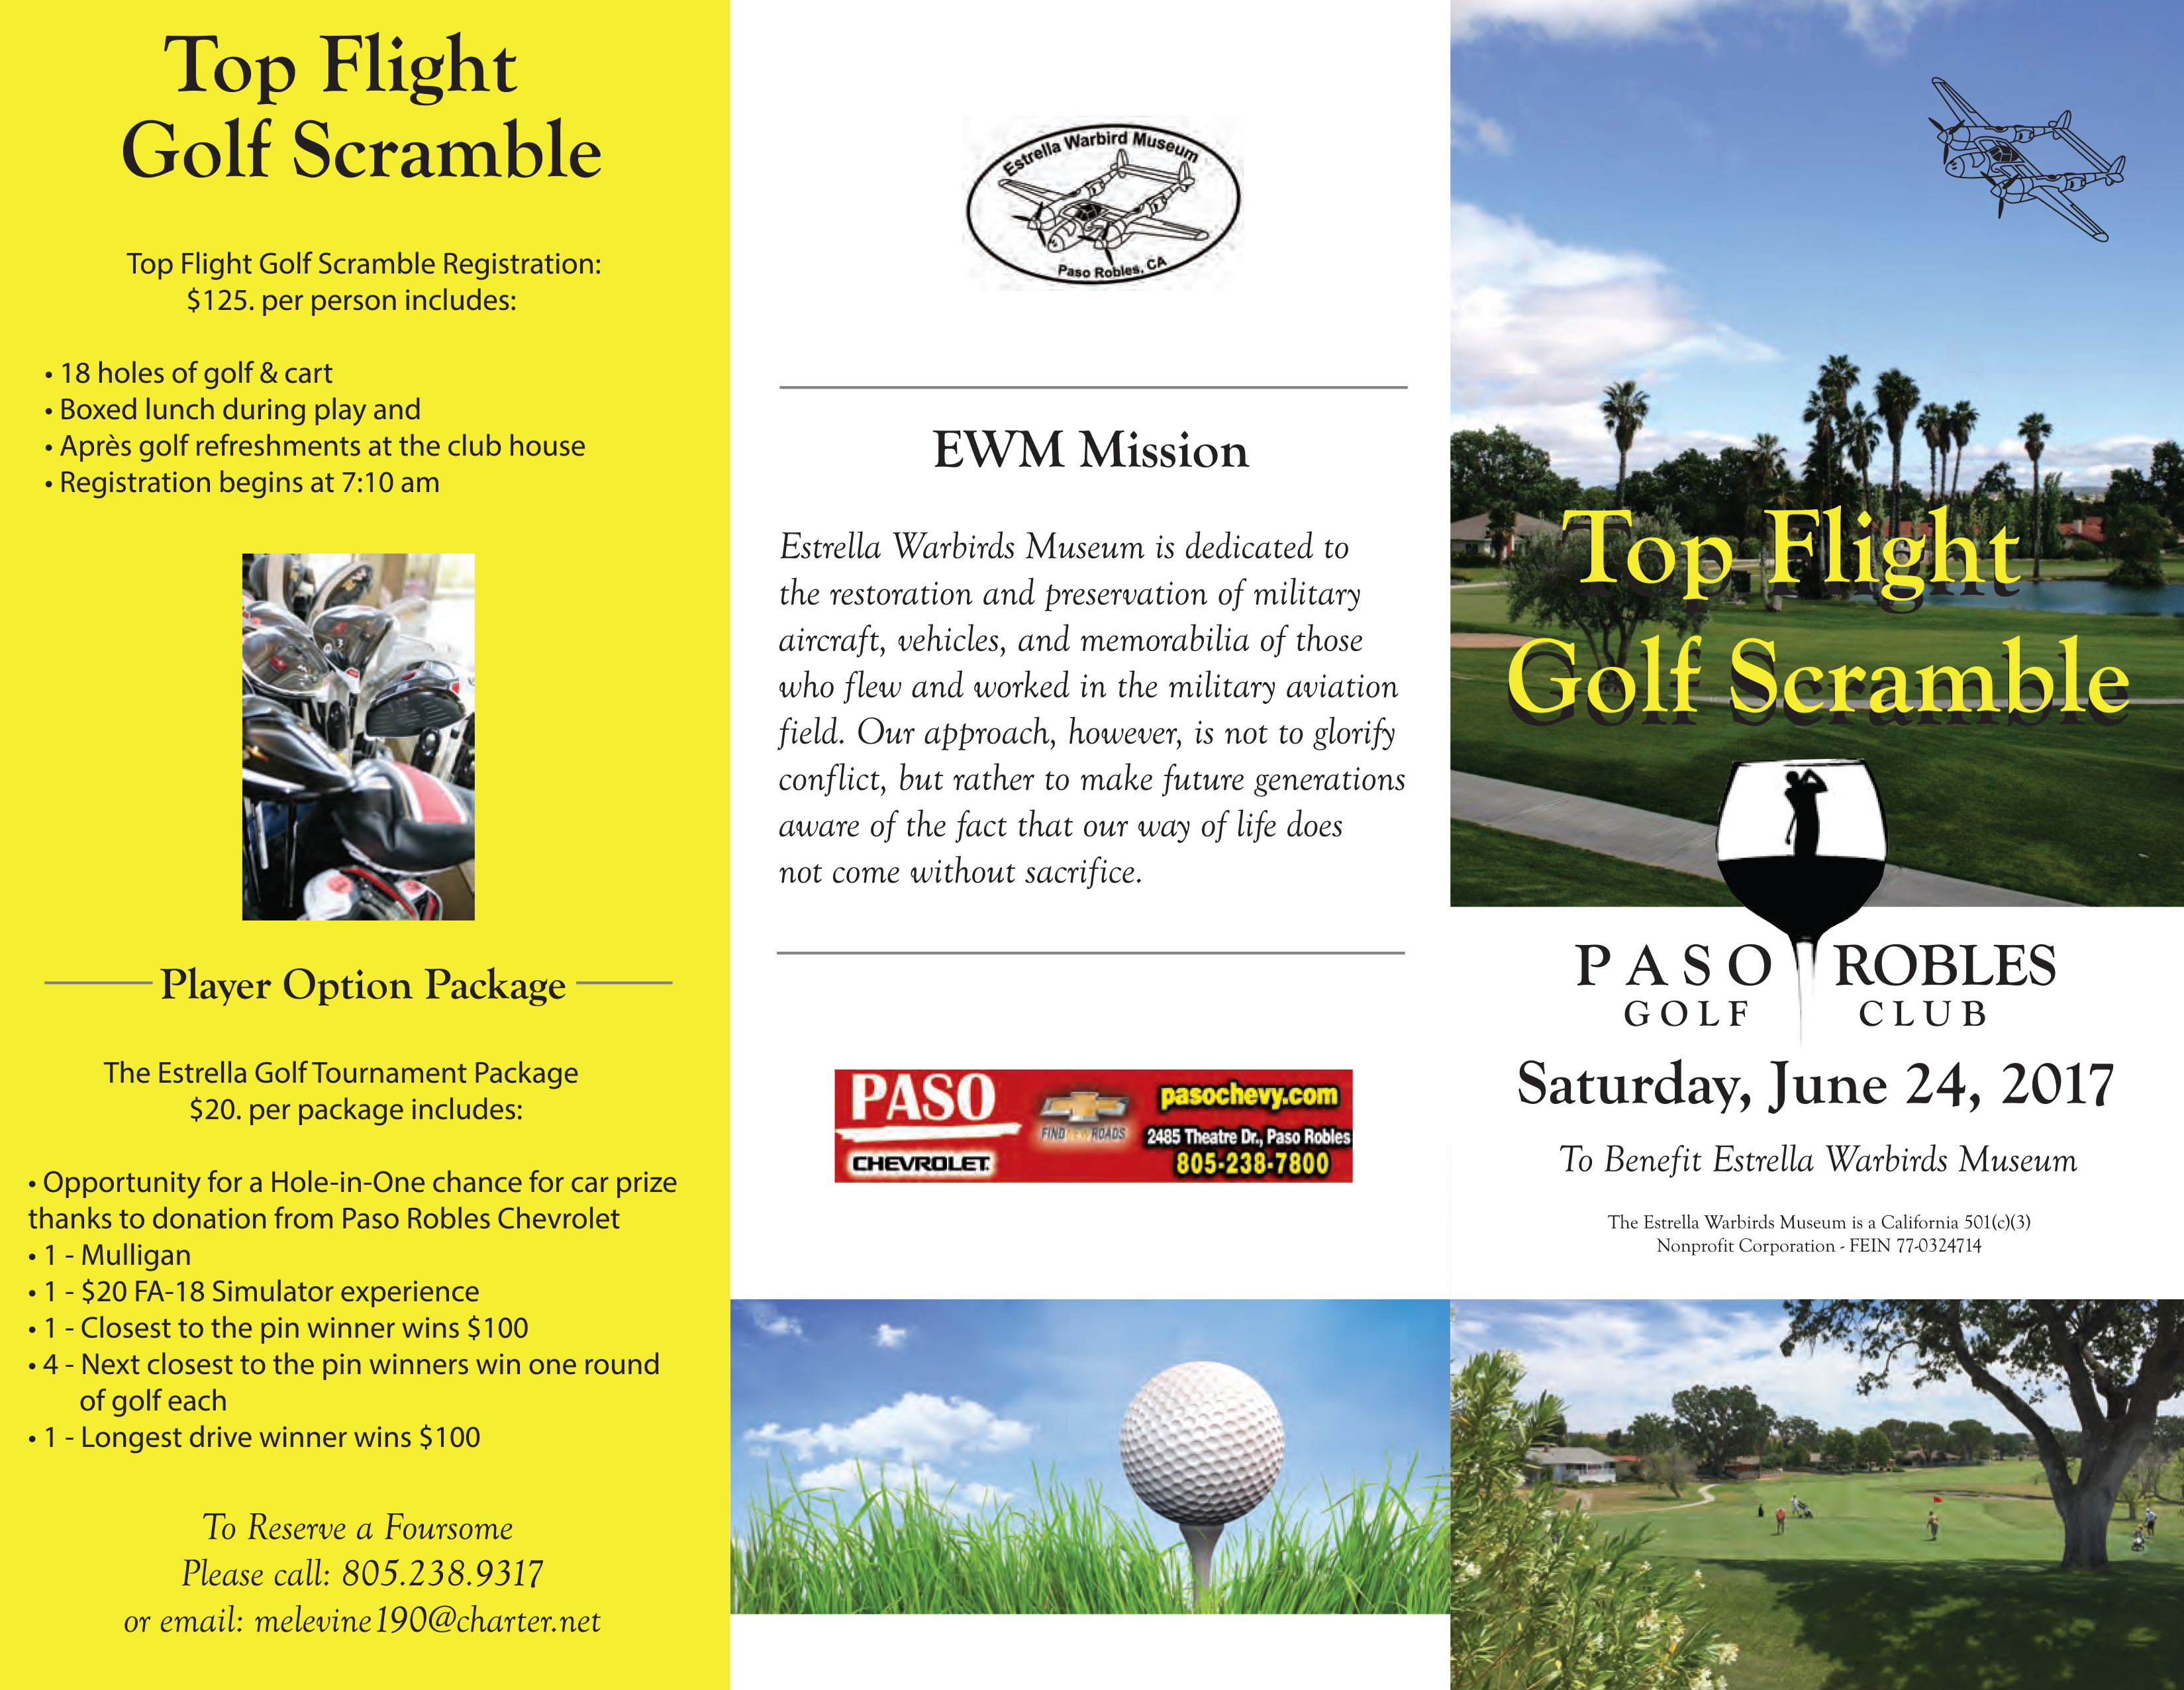 Top Flight Golf Scramble